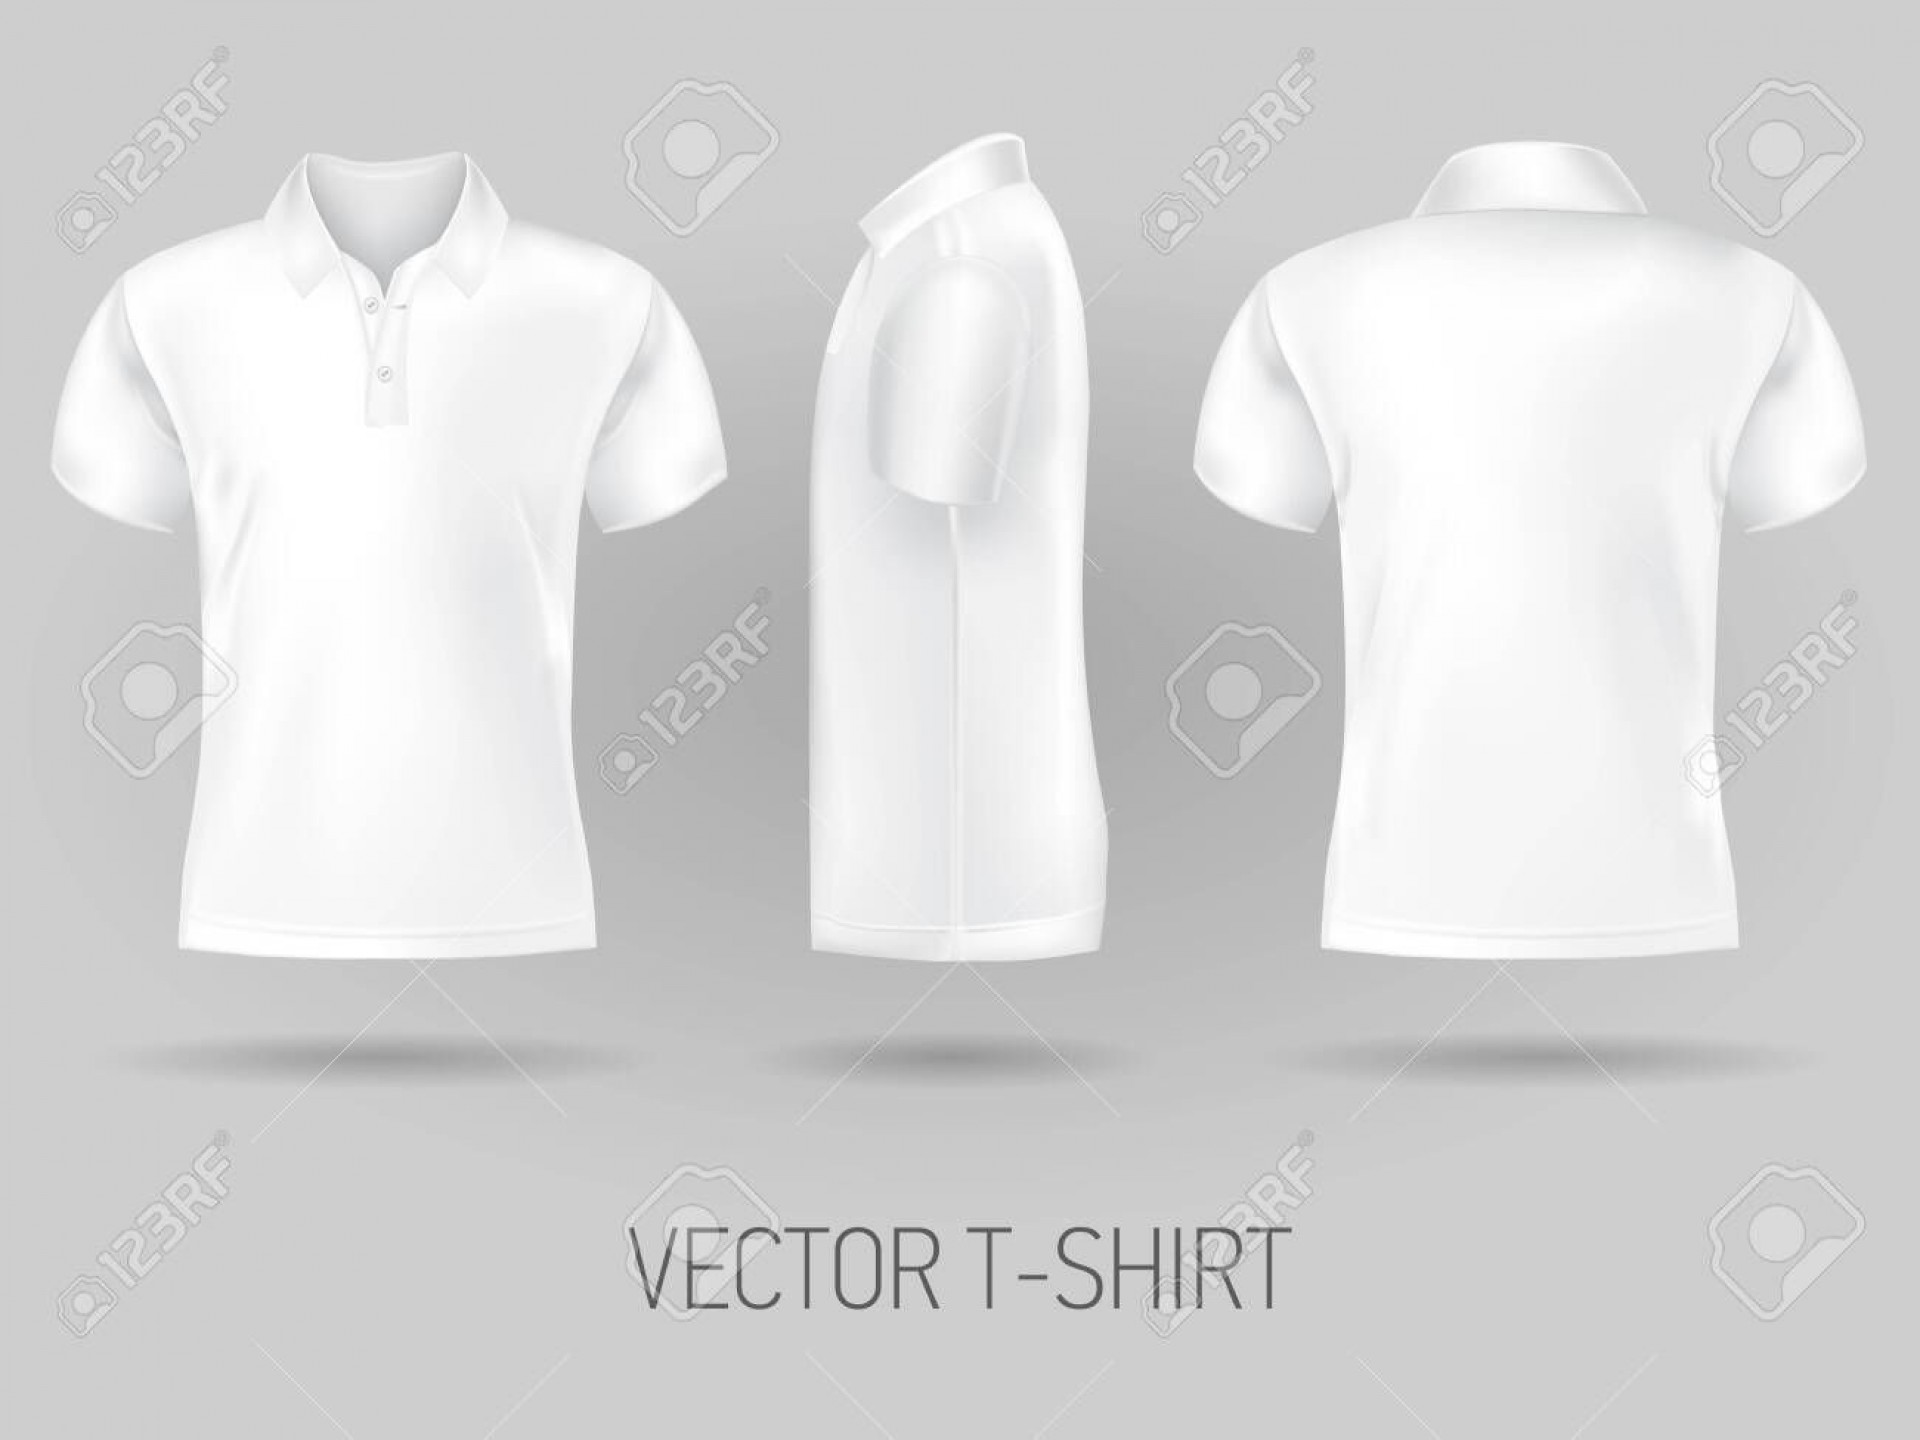 003 Stirring Tee Shirt Design Template Image  Templates T Illustrator Free Download Polo Psd1920